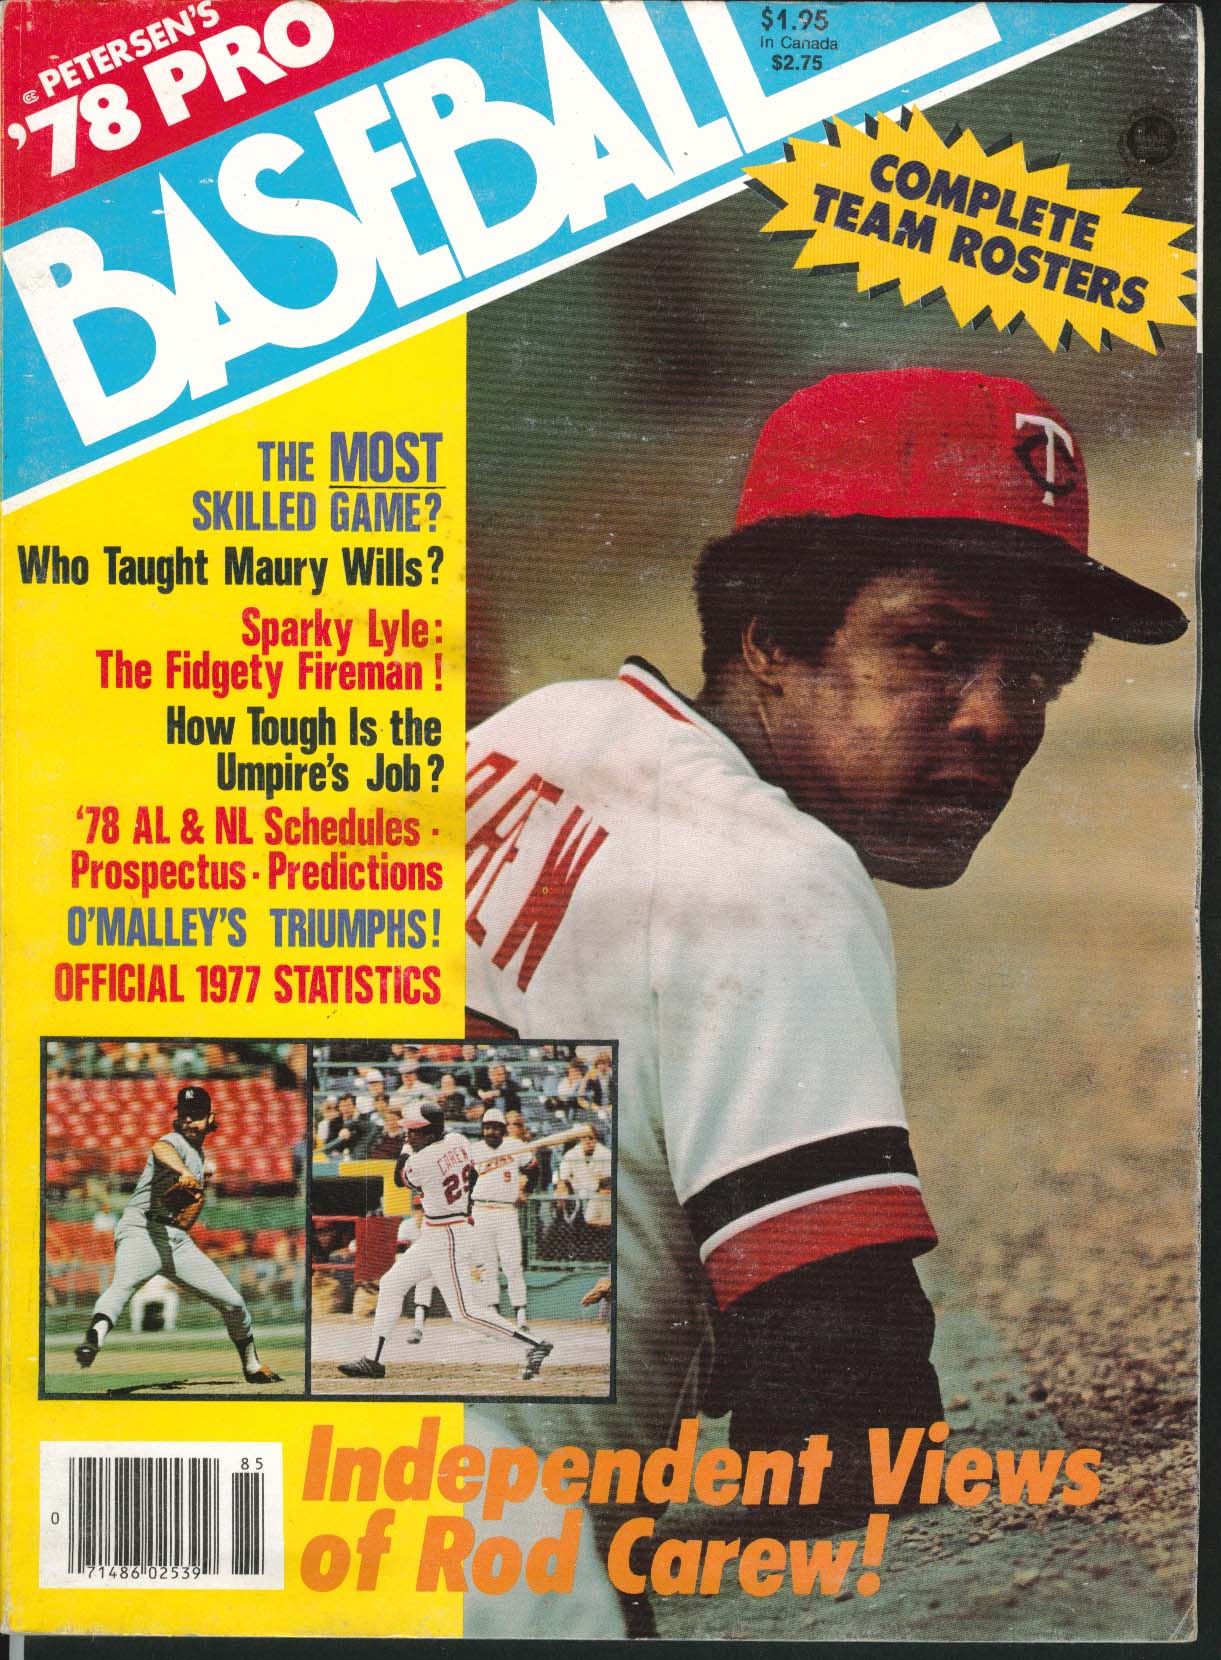 Image for PETERSEN'S '78 PRO BASEBALL Rod Carew Maury Wills Sparky Lyle 1977 Statistics ++